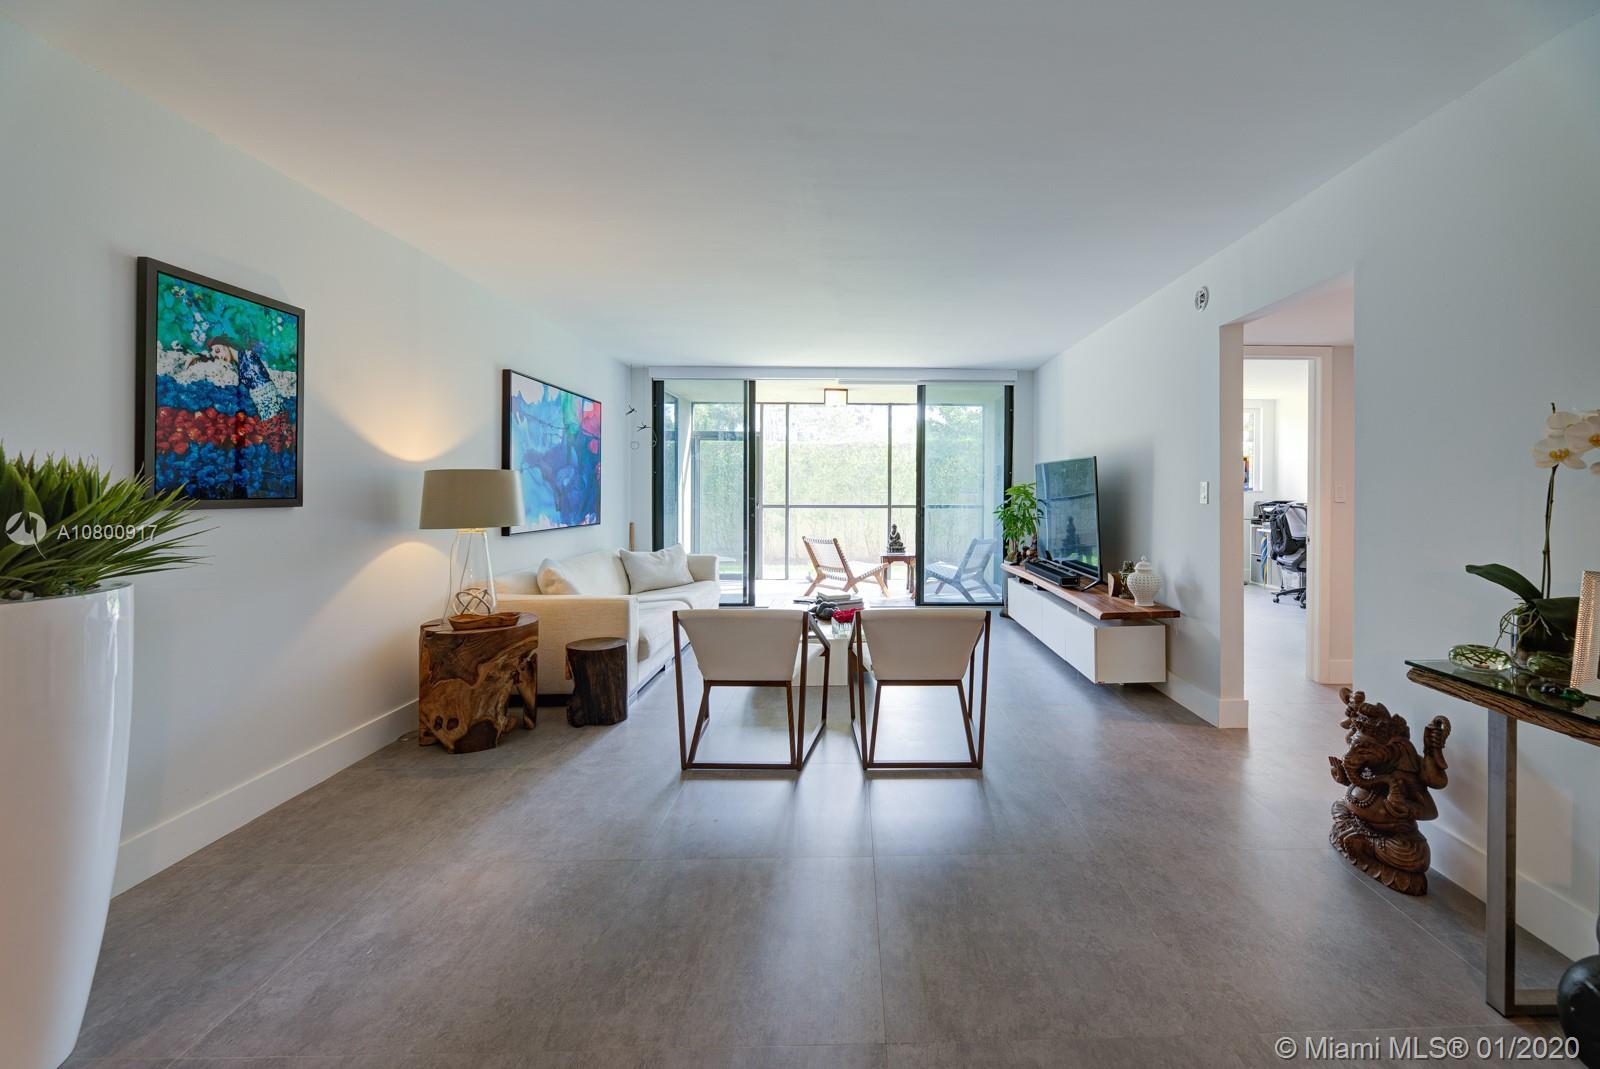 Newly renovated condo 1,475 Sq of Living area, 2 full bathrooms. All new appliances, floors, kitchen